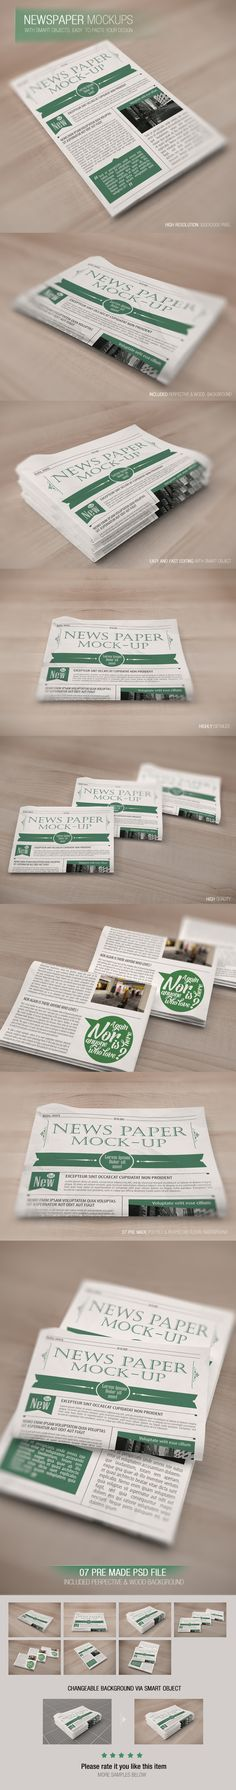 NEWSPAPER MOCK-UP FREE on Behance